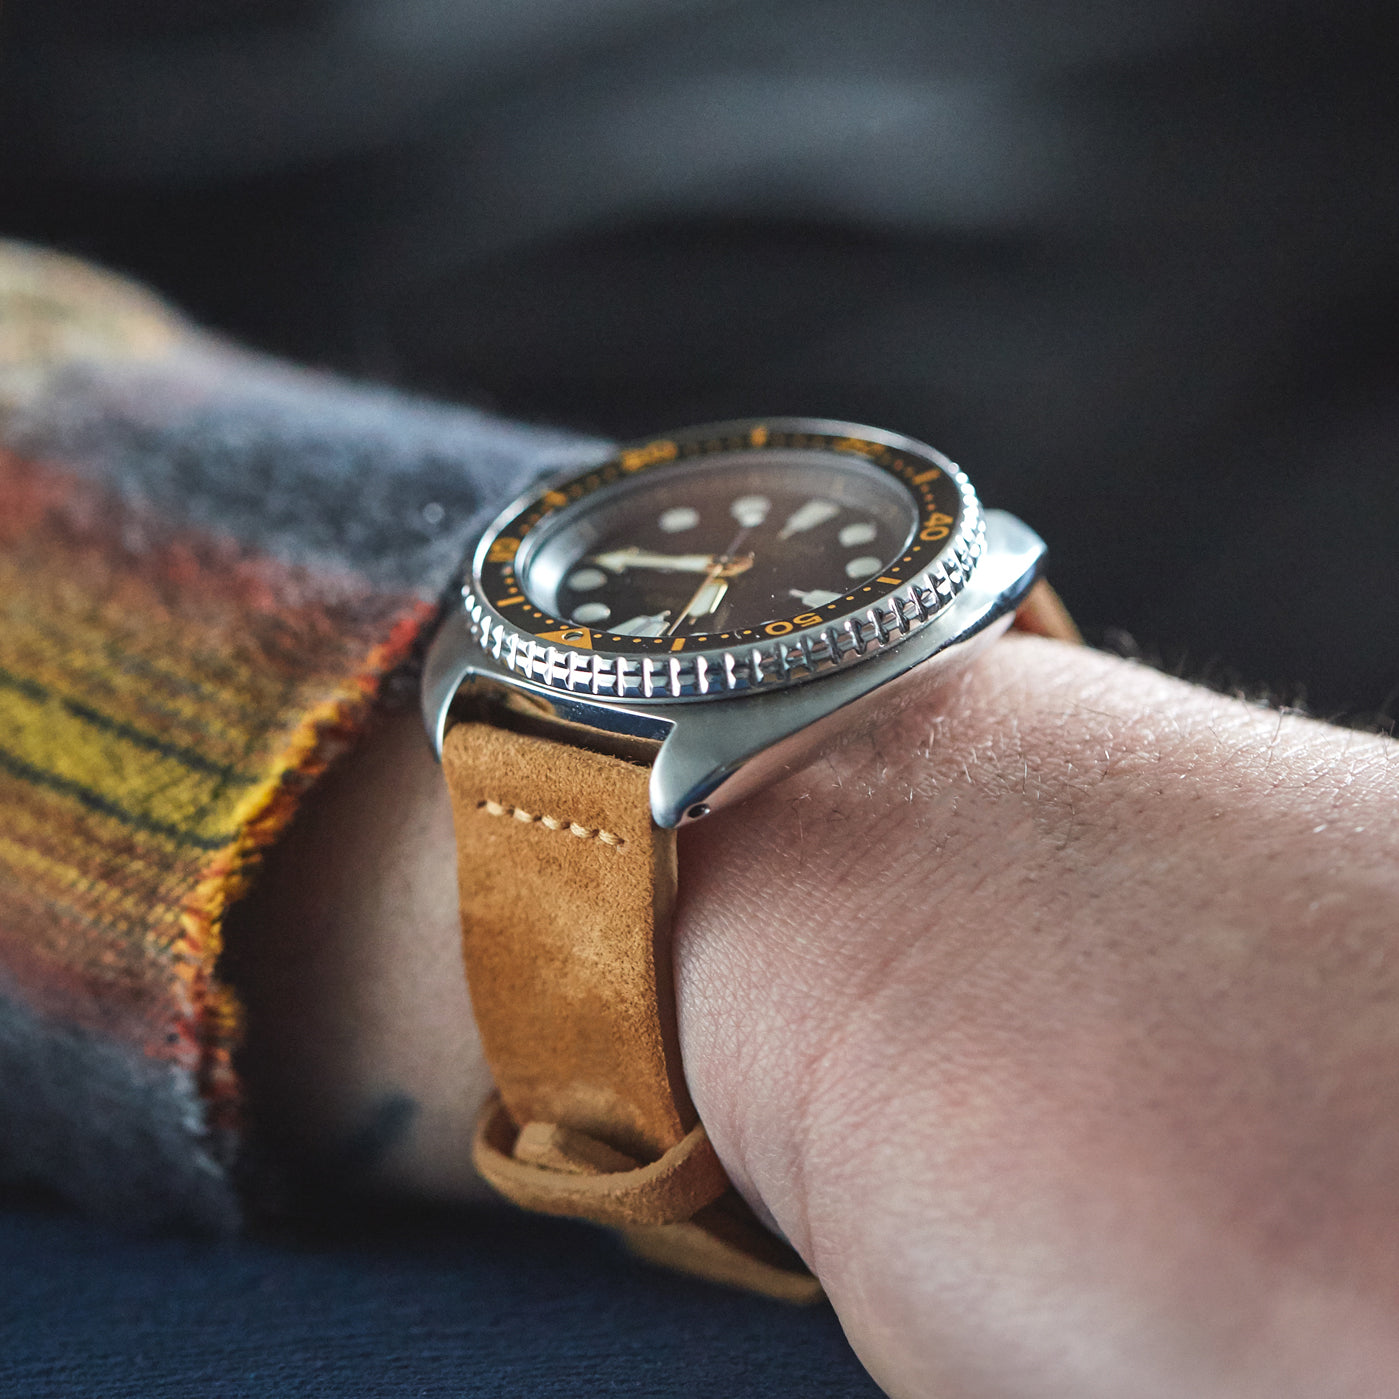 cognac-suede-watch-strap